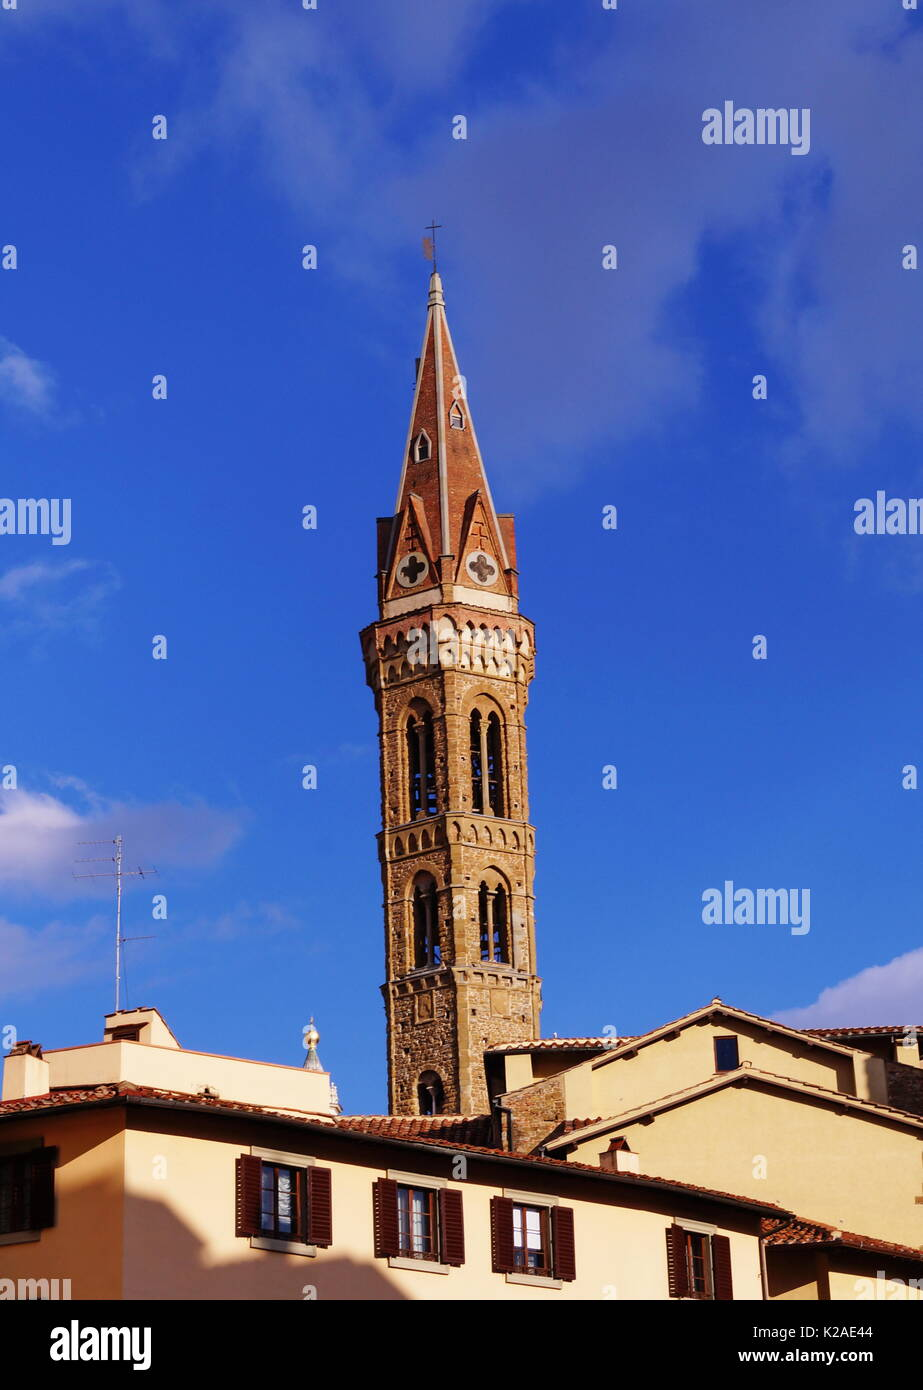 Bell Tower of the Badia Fiorentina in Florence, Italy Stock Photo